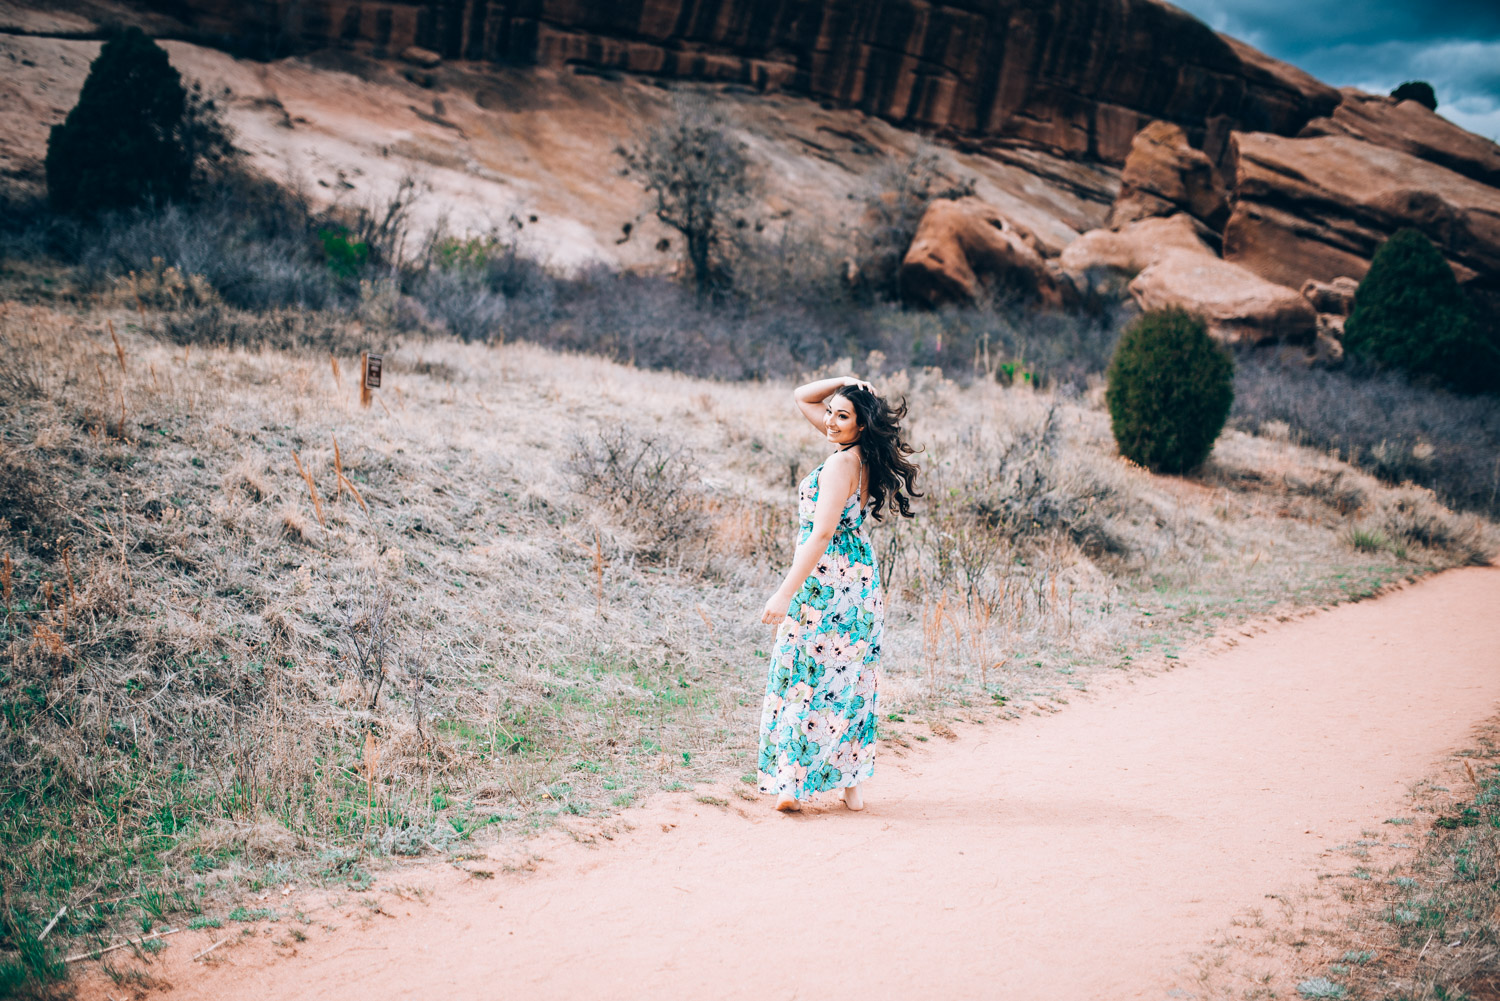 Red Rocks High School Senior Photos - Denver Colorado (4 of 24).jpg